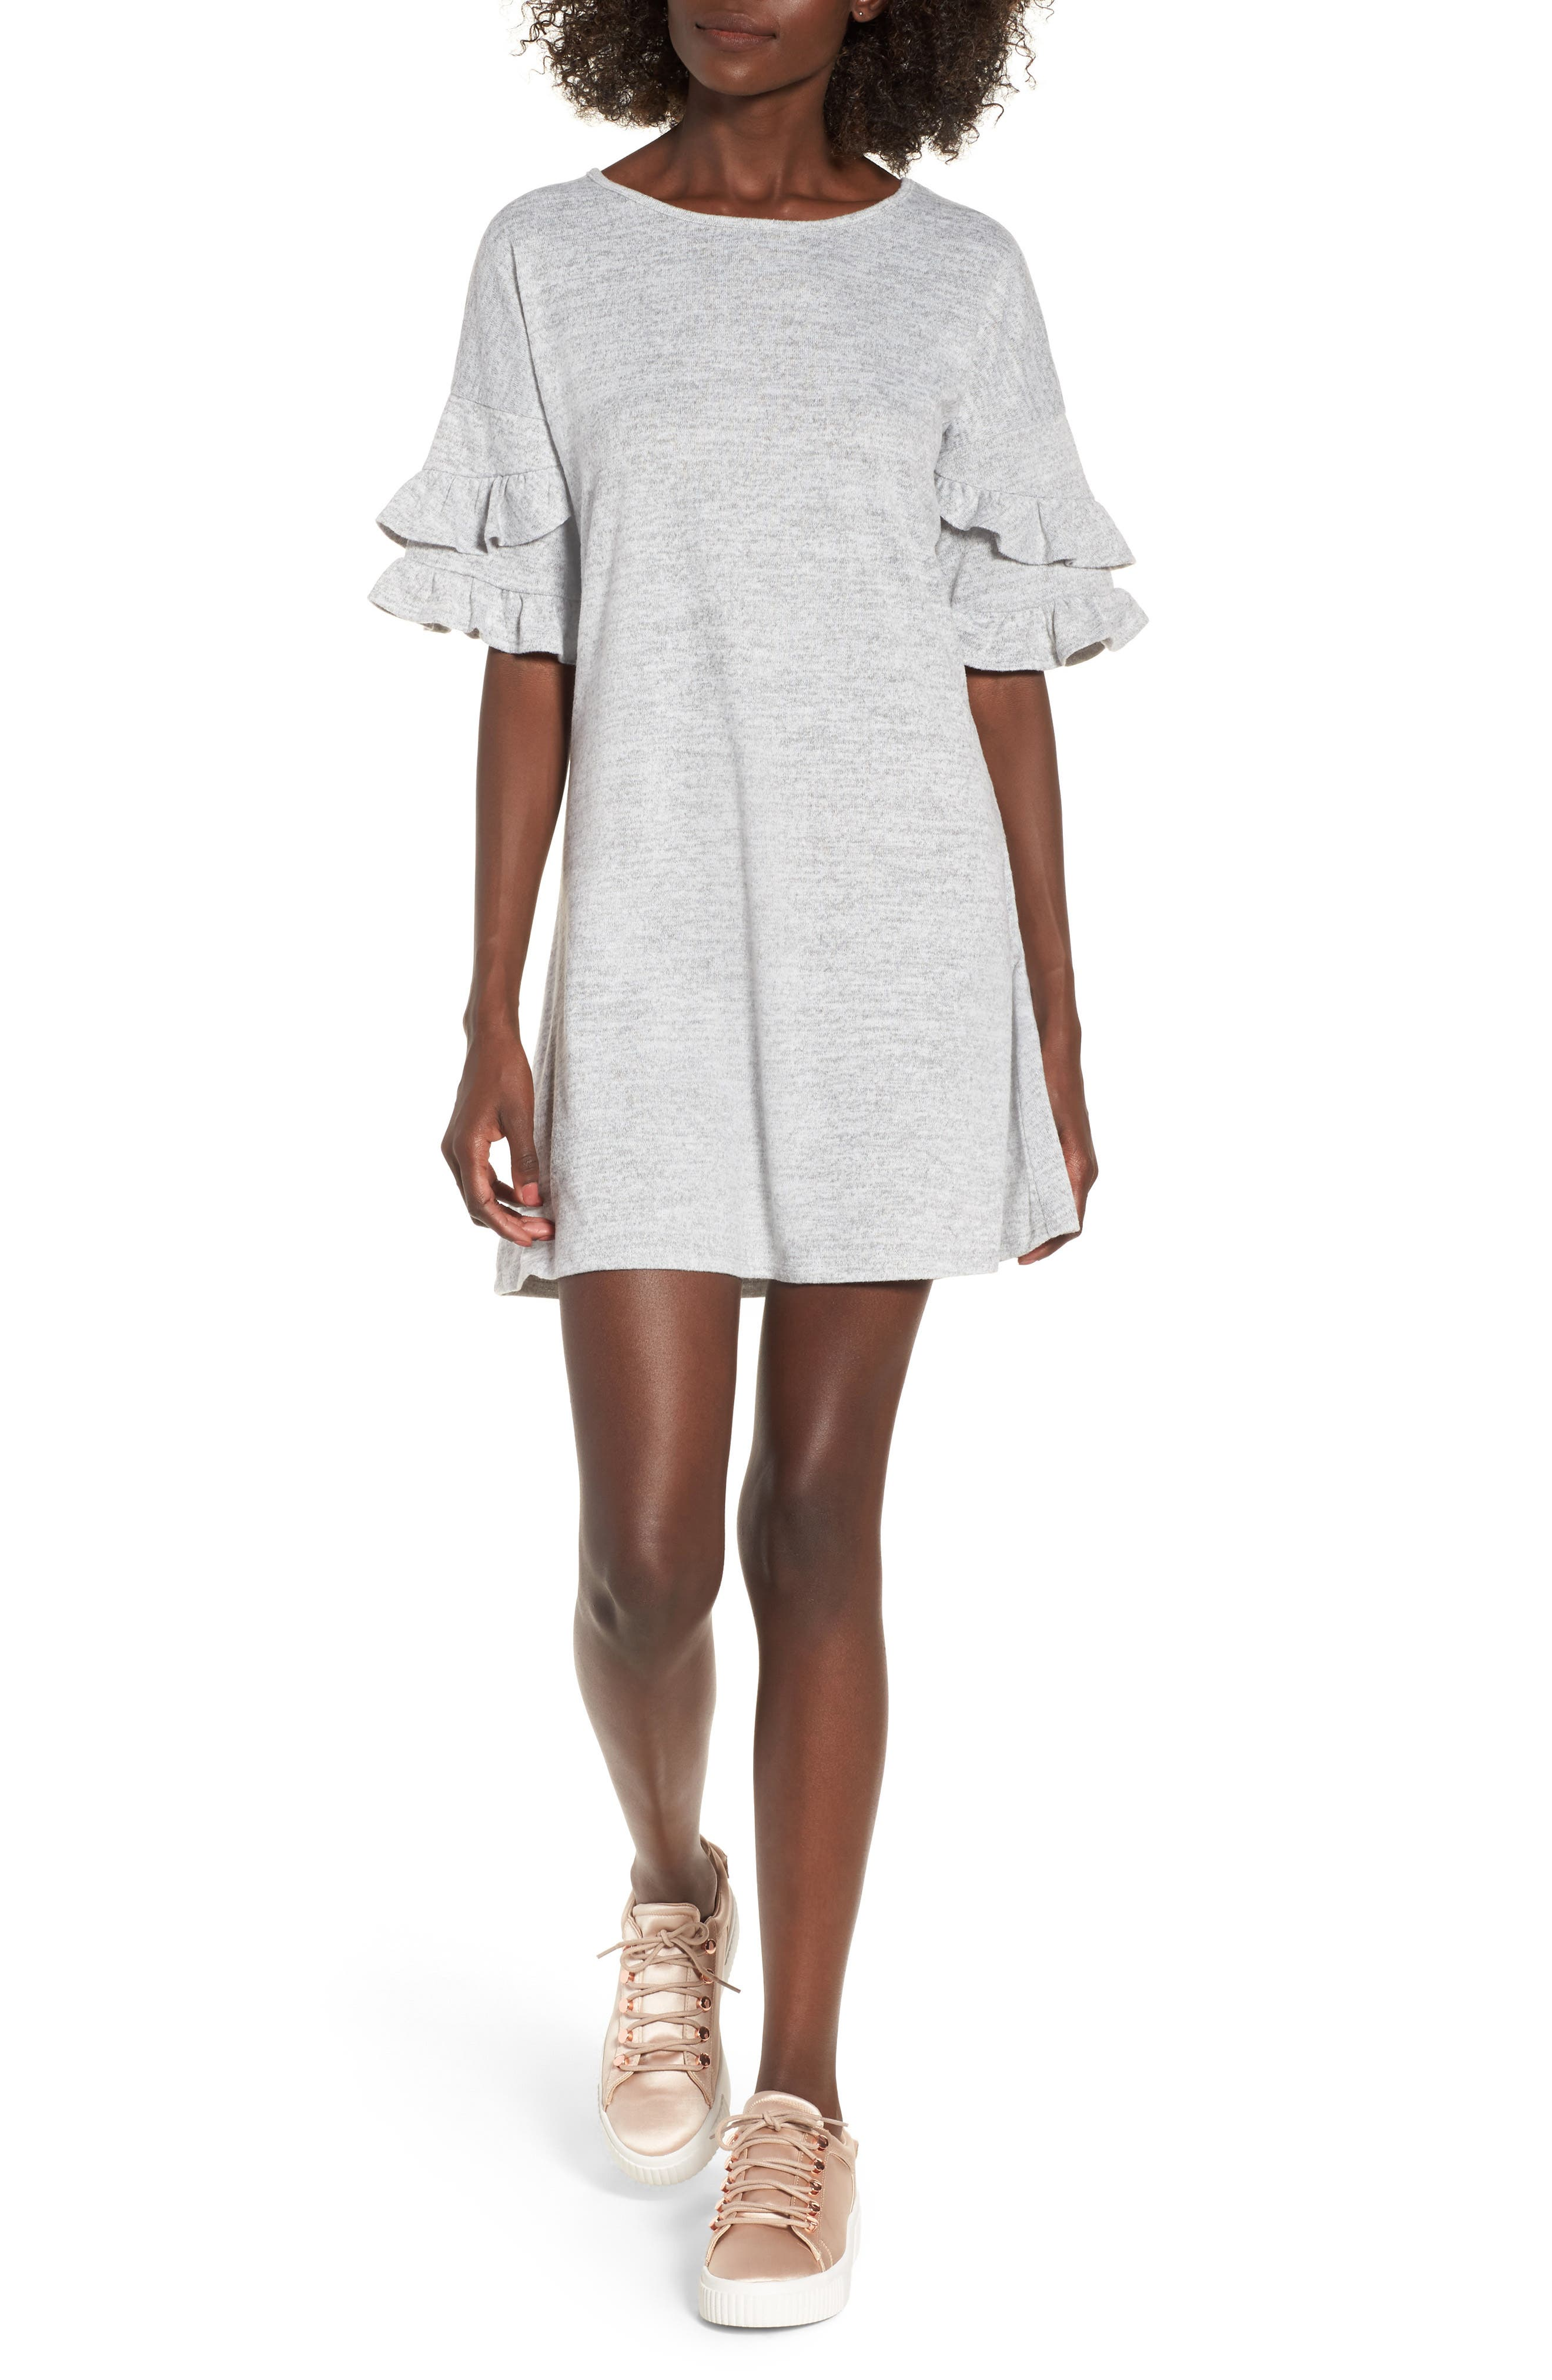 Ruffle Sleeve Sweatshirt Dress,                             Main thumbnail 1, color,